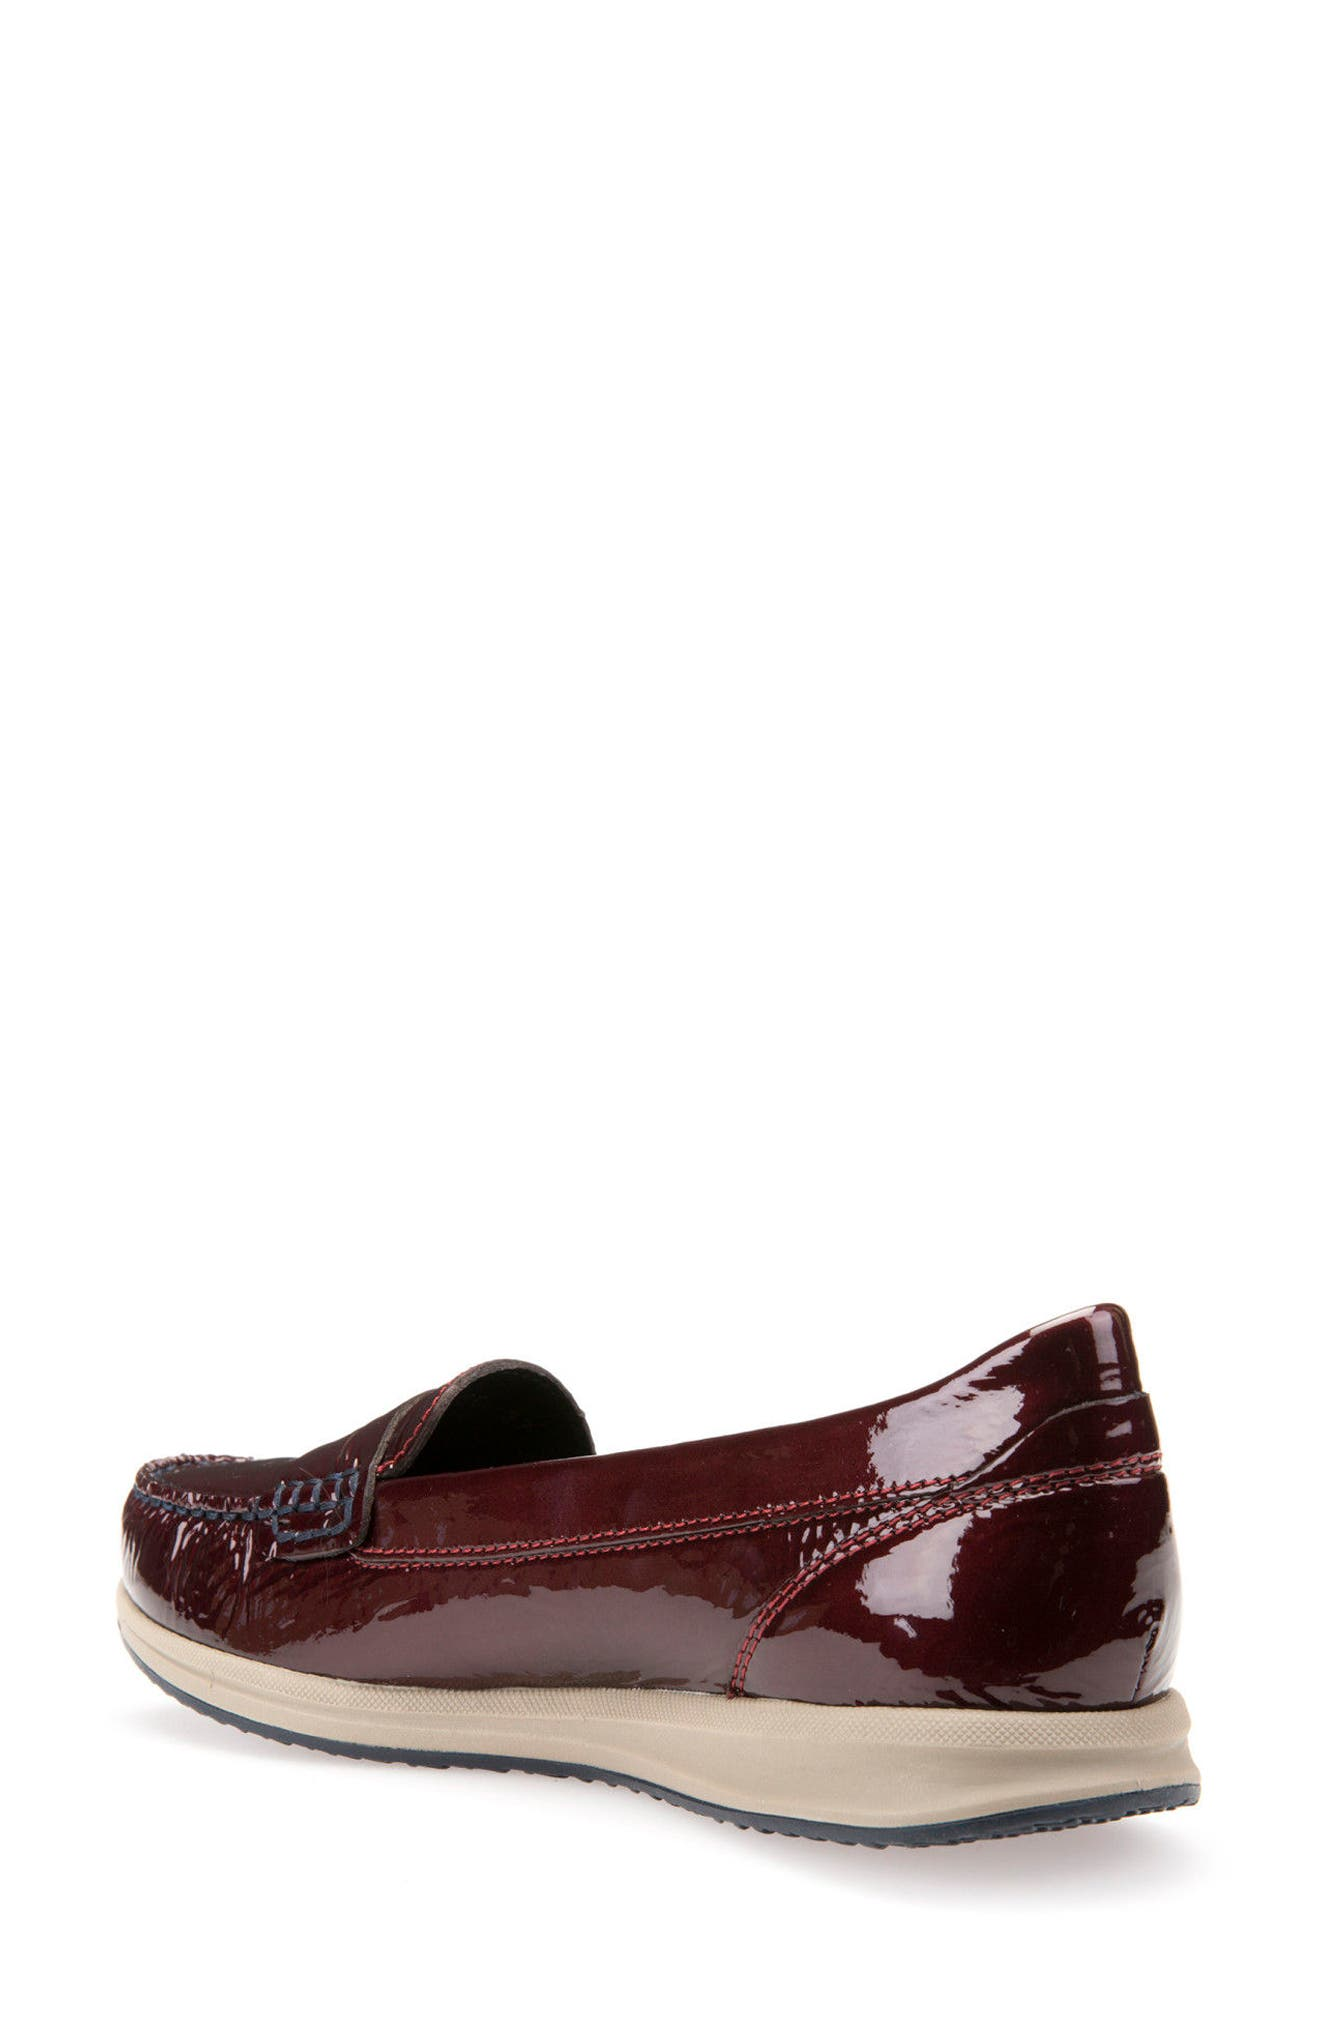 Alternate Image 2  - Geox Avery Loafer (Women)